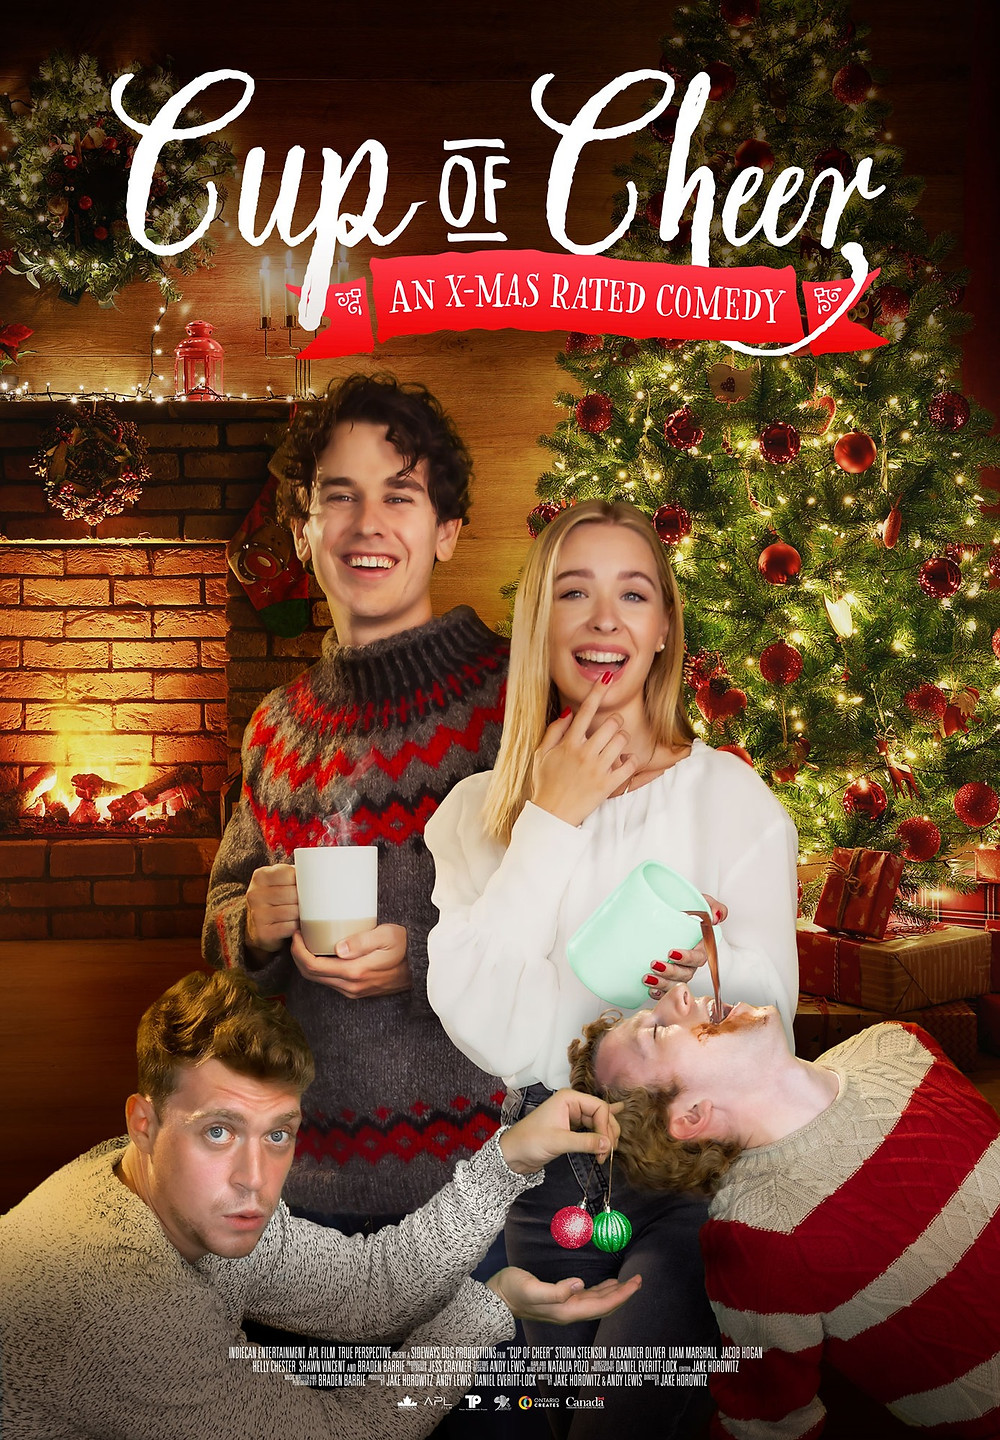 Poster for Cup of Cheer showing protagonists.